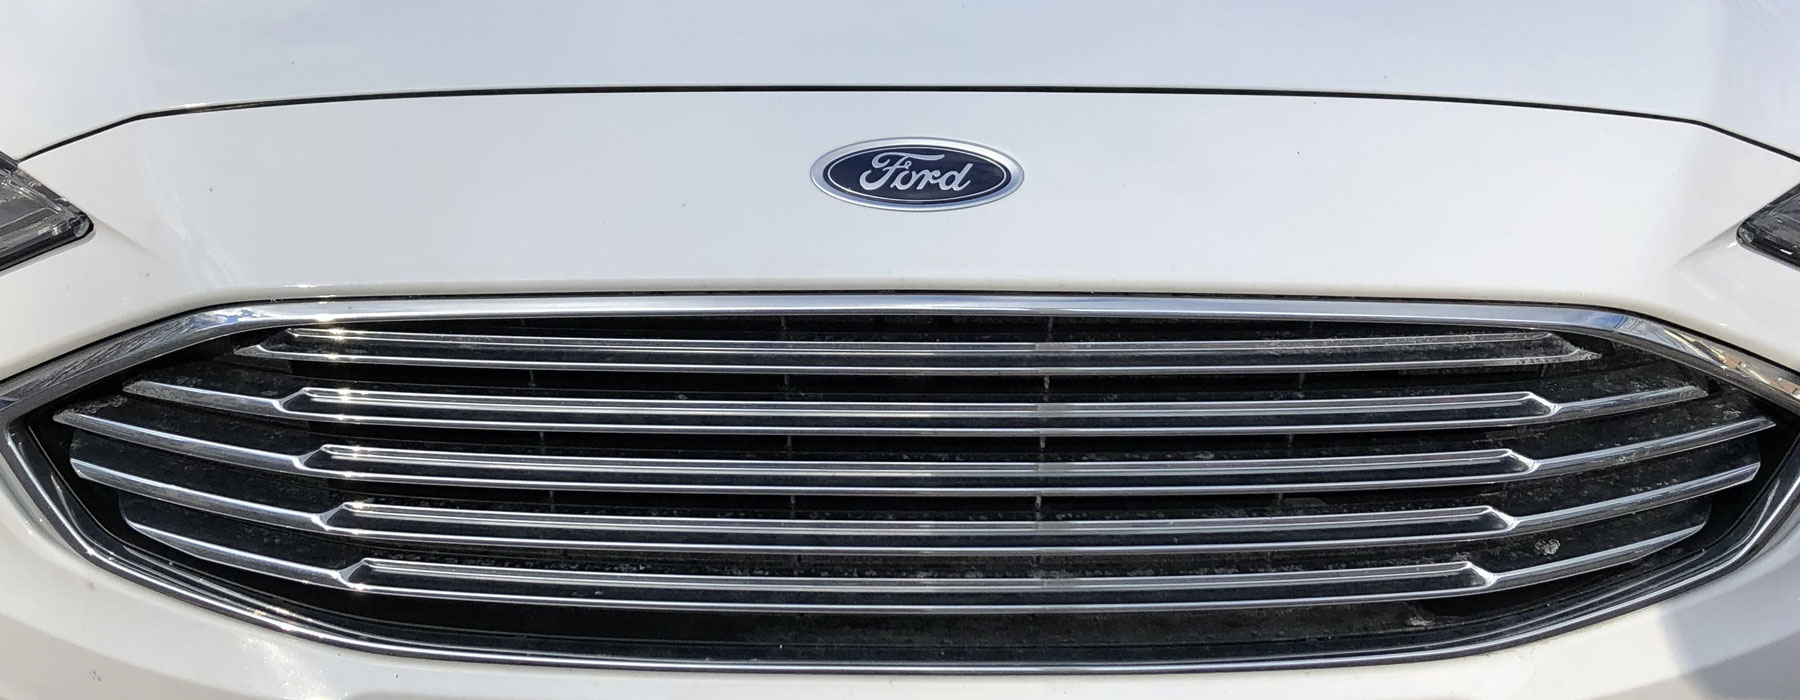 Certifications Ford